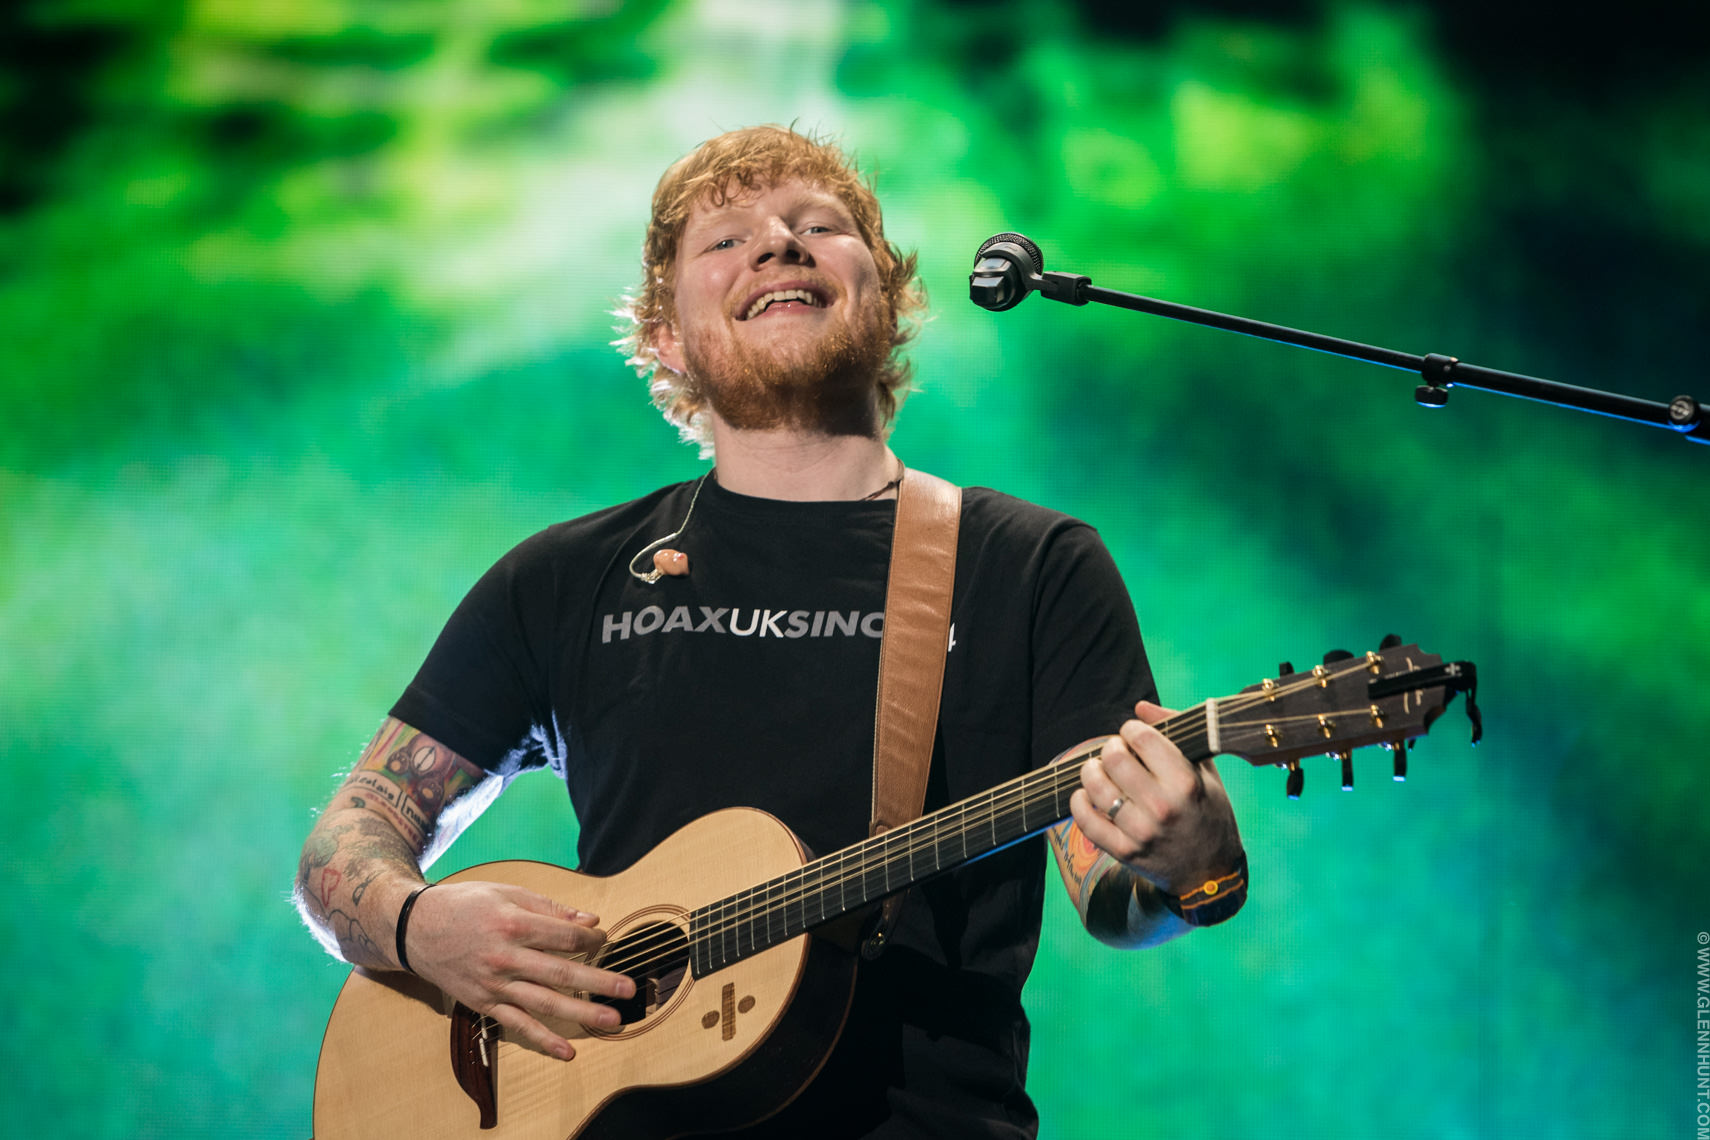 Ed sheeran concert dates in Brisbane